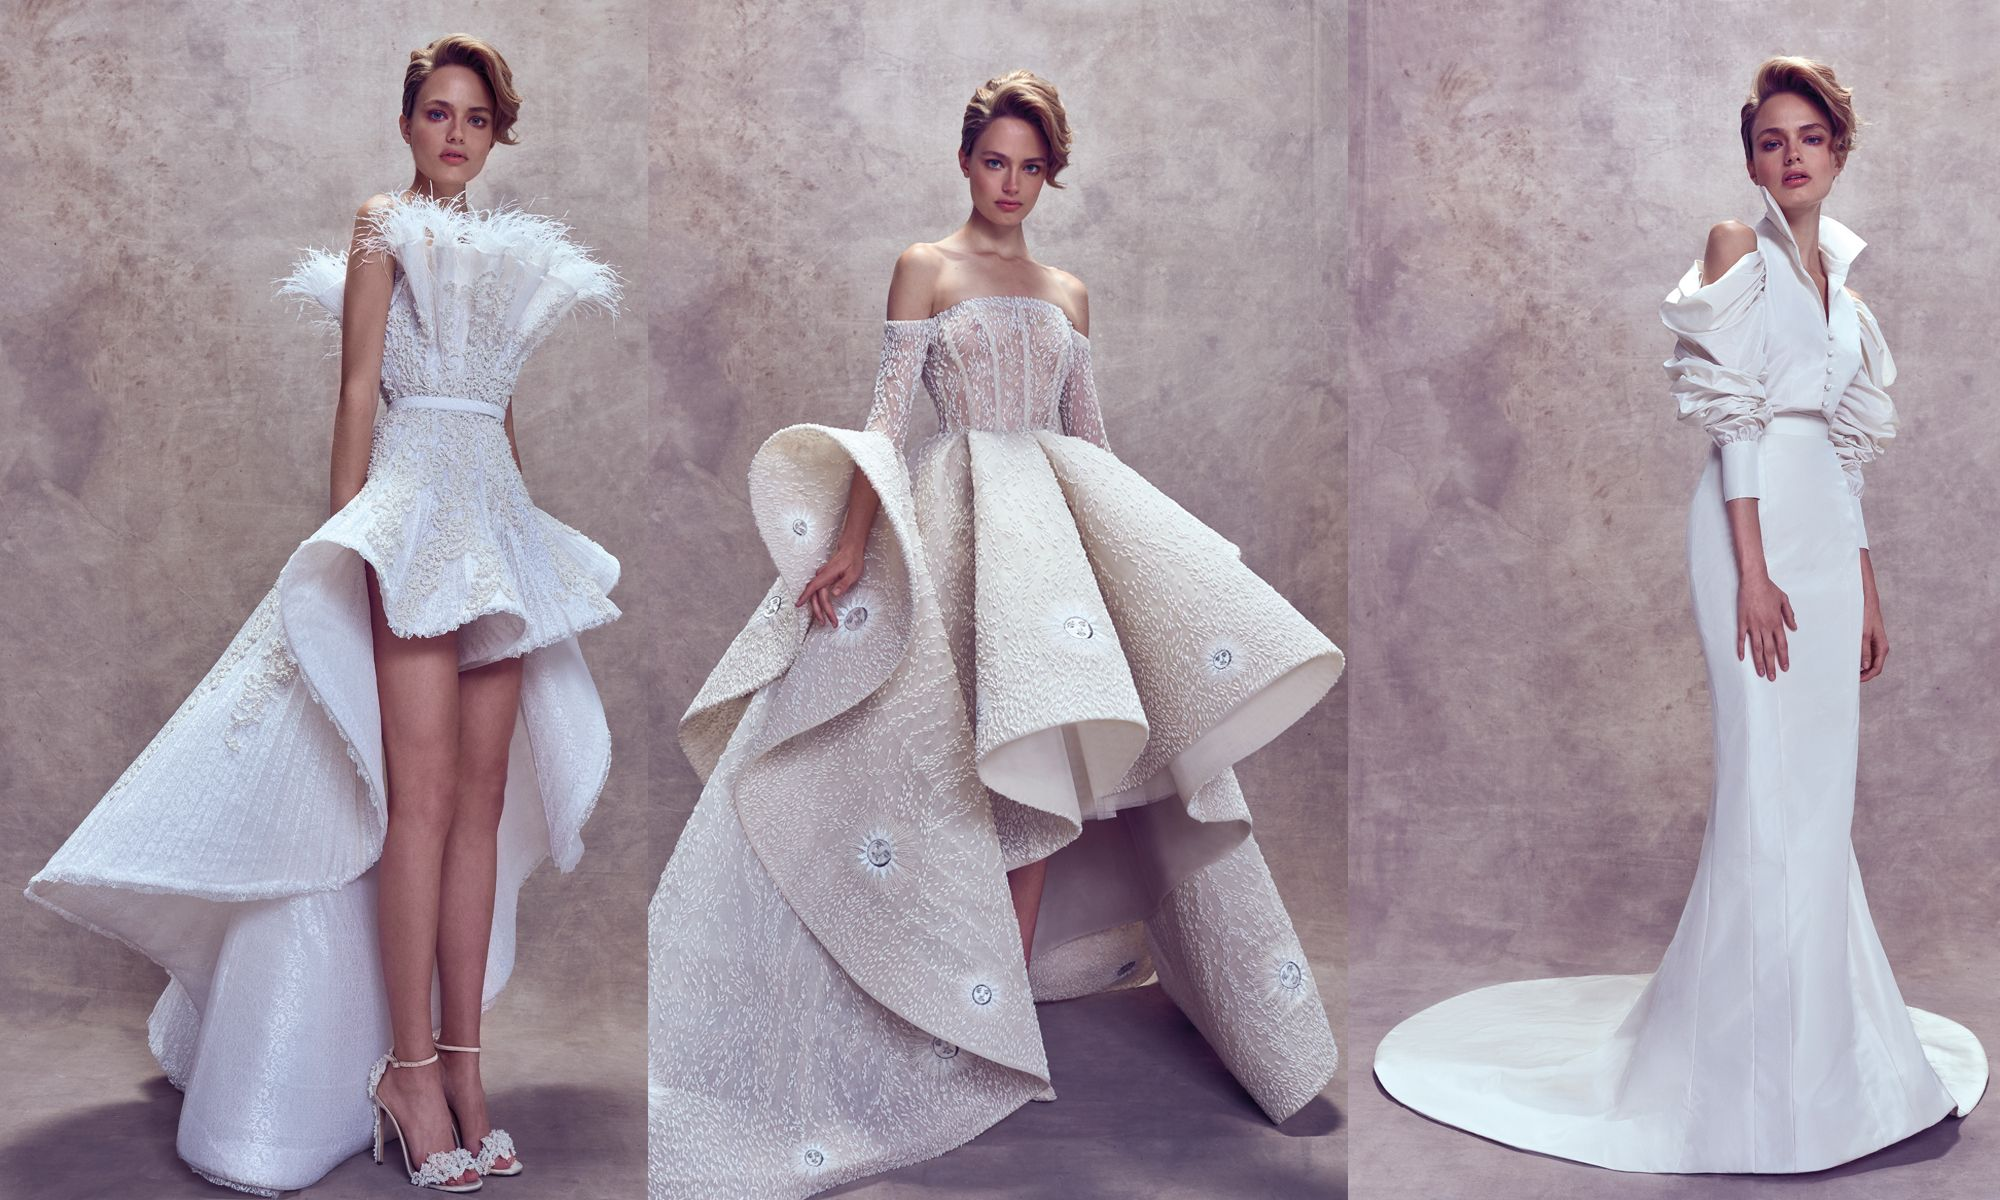 Dramatic Flair: The Hottest Wedding Dresses For 2018